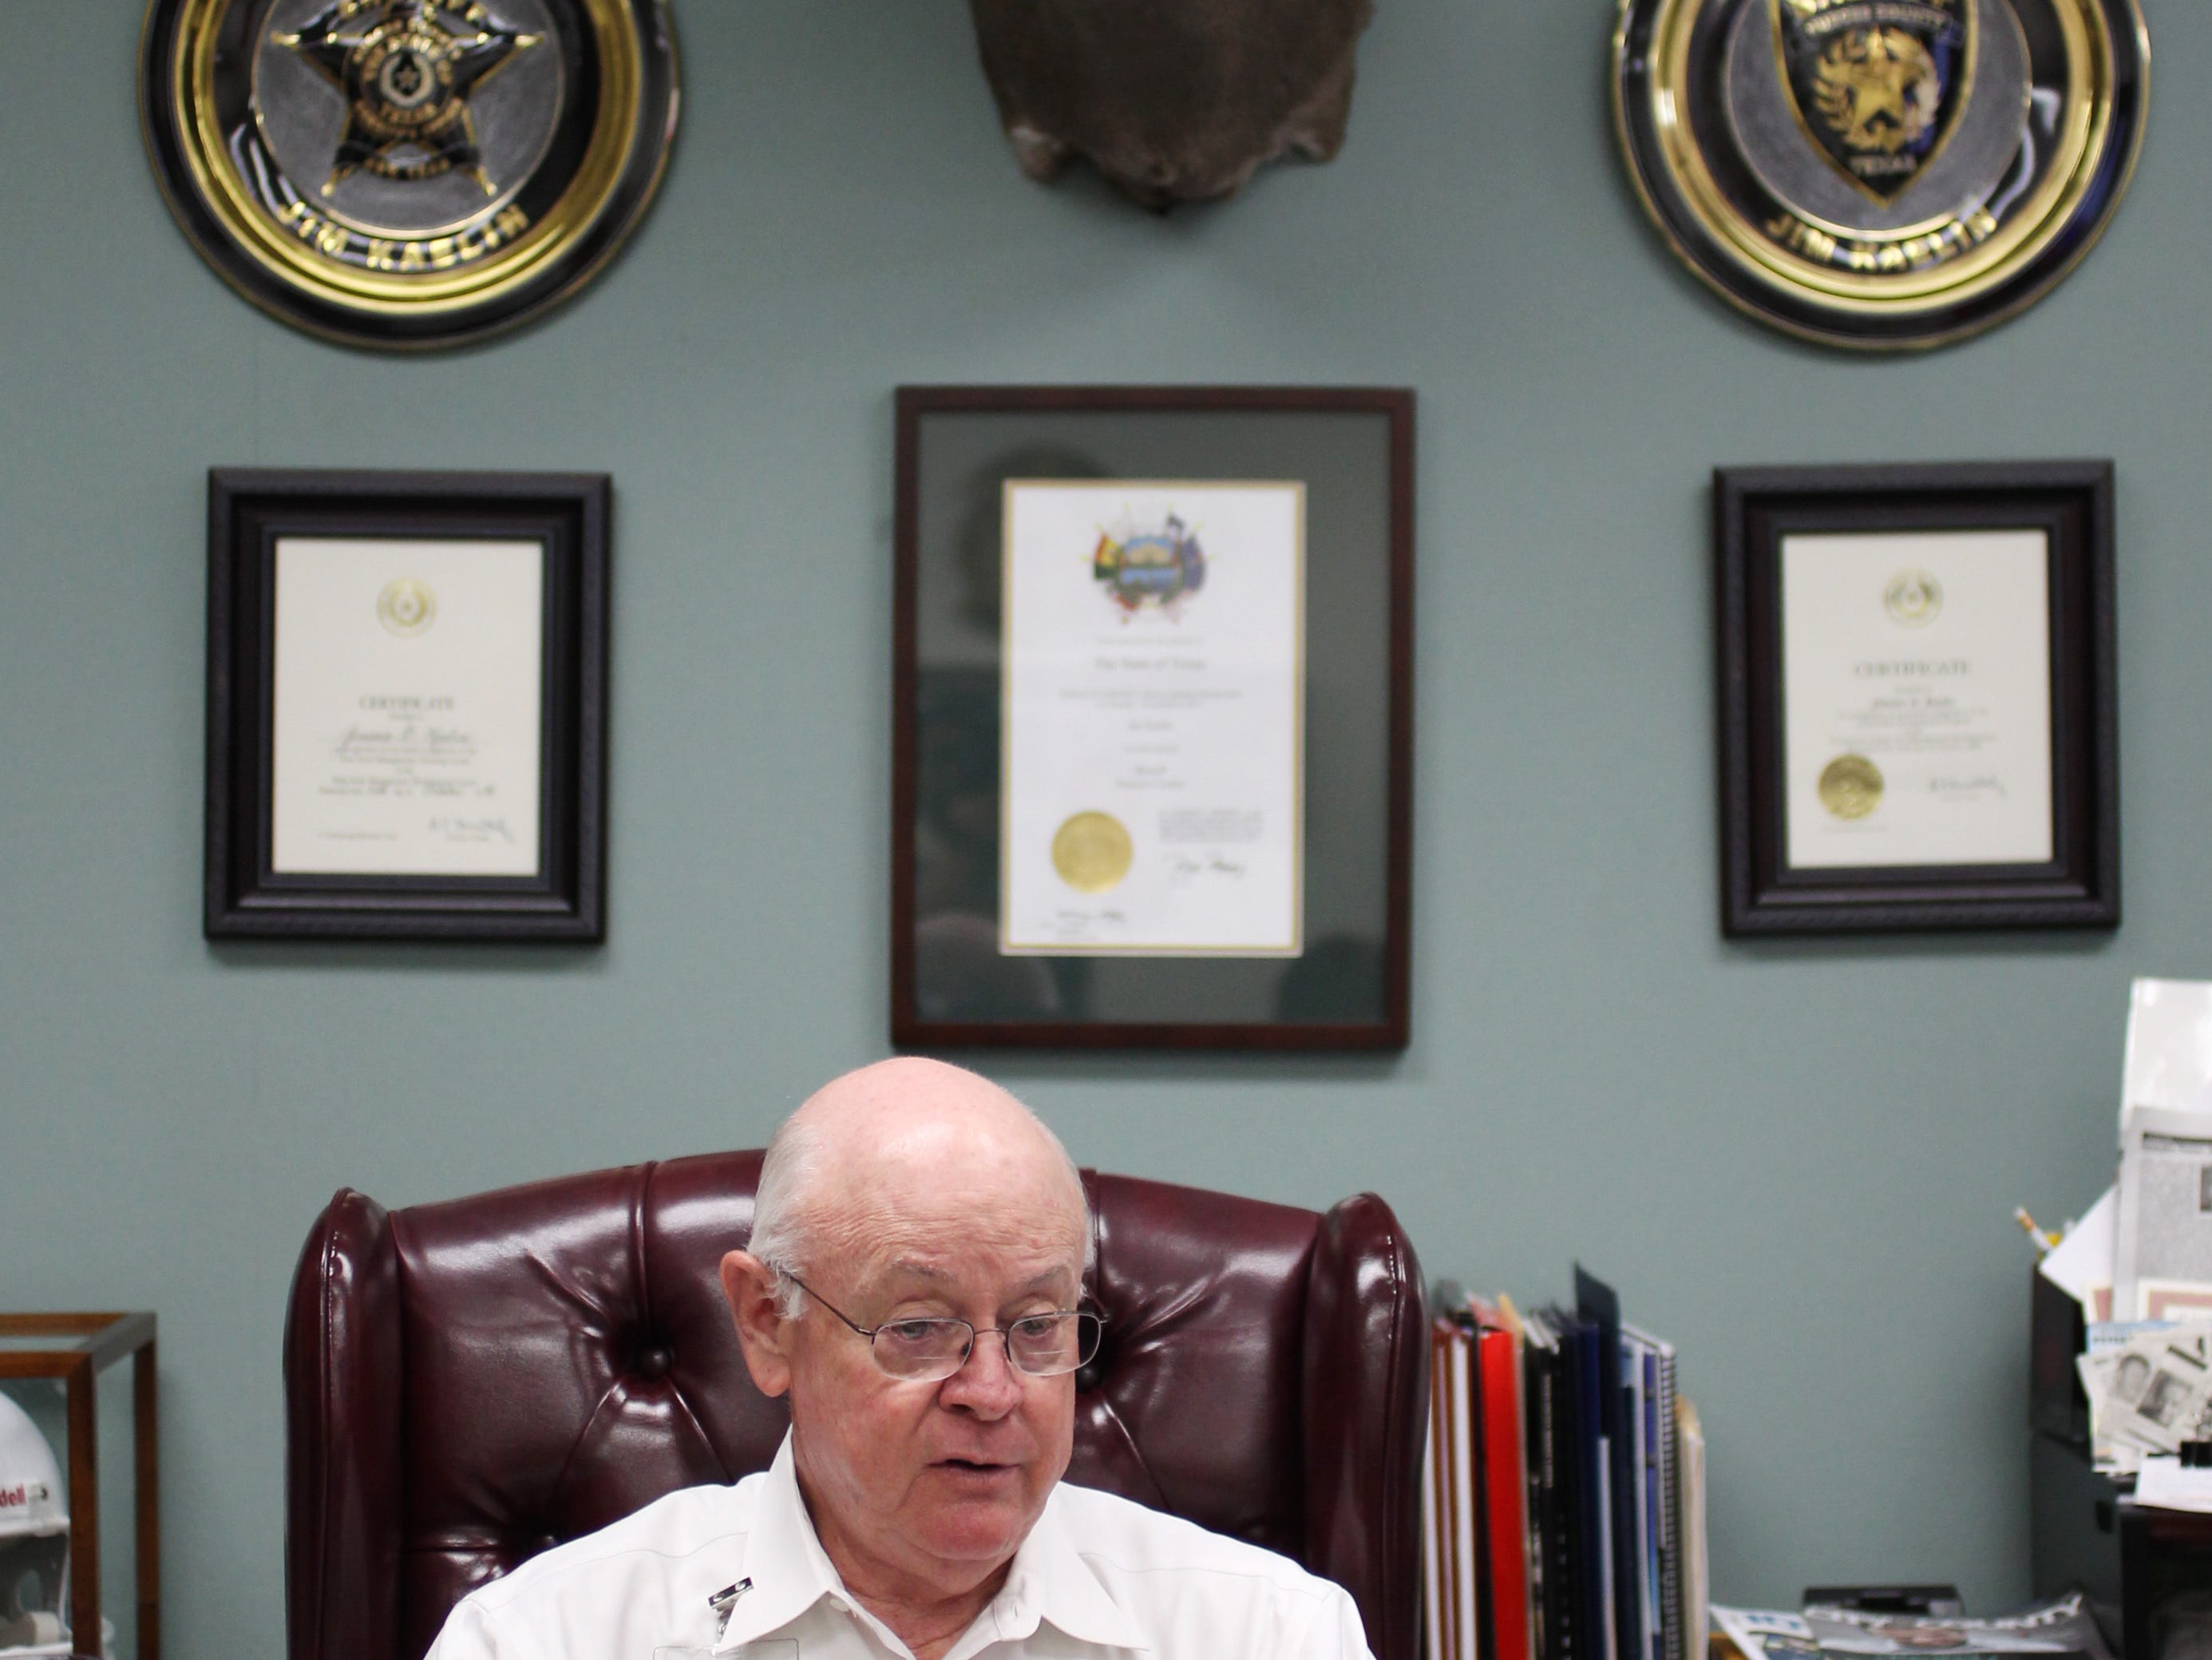 Nueces County Sheriff Jim Kaelin explains his department's extradition process Thursday, Aug. 1, 2013 in his office in Corpus Christi.